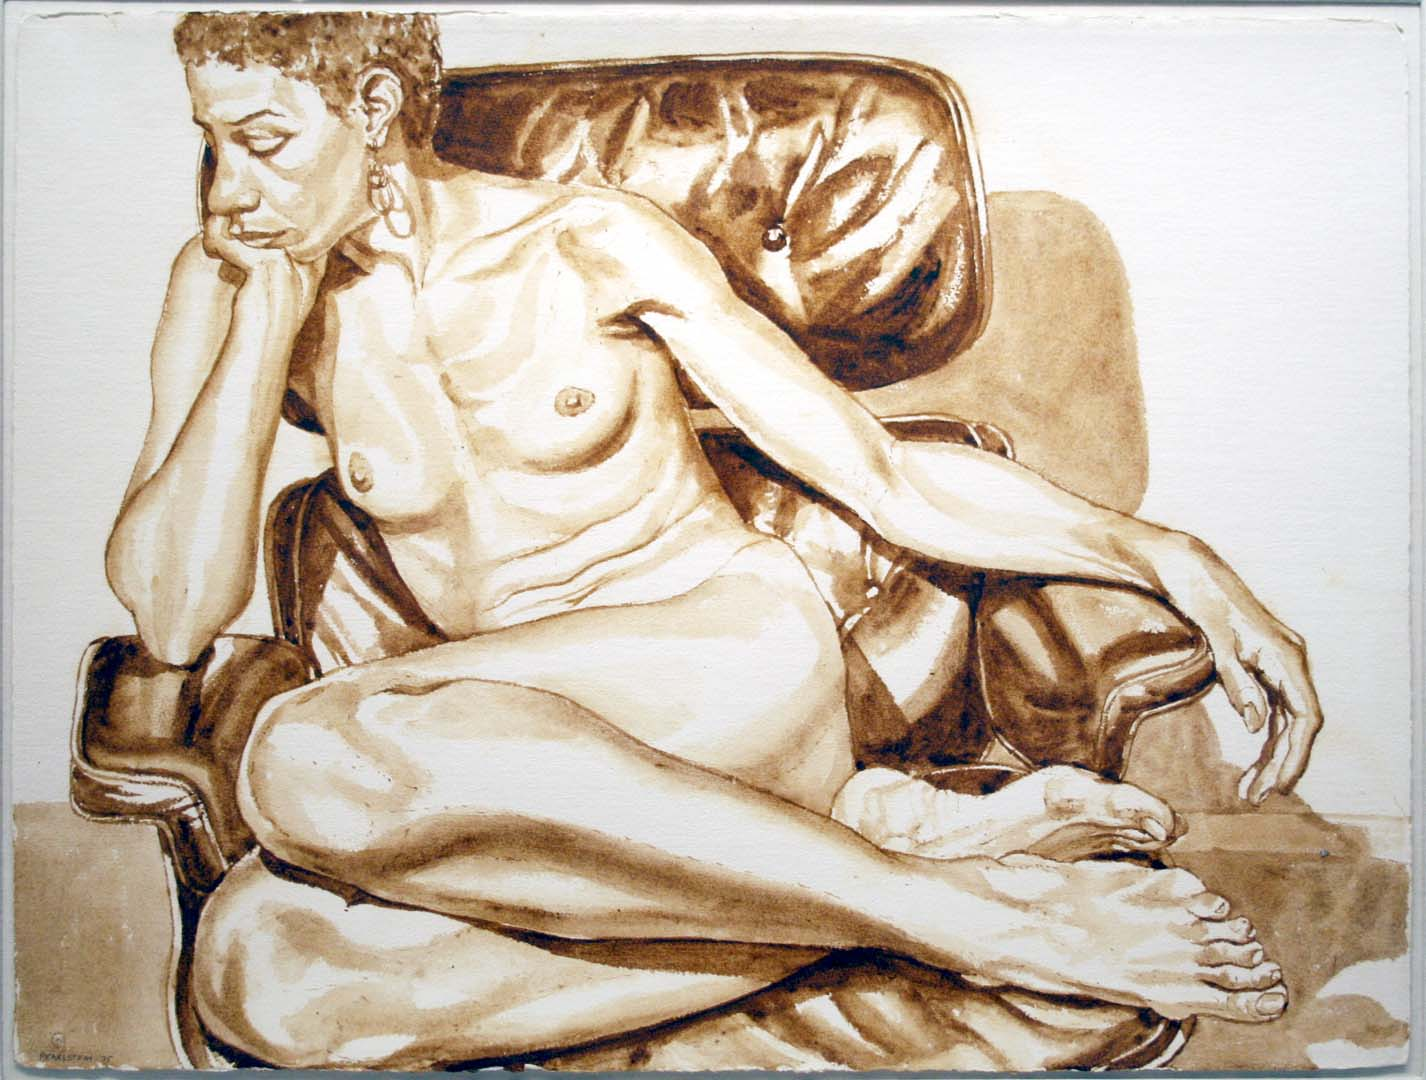 1975 UNTITLED Sepia Wash 23 x 30